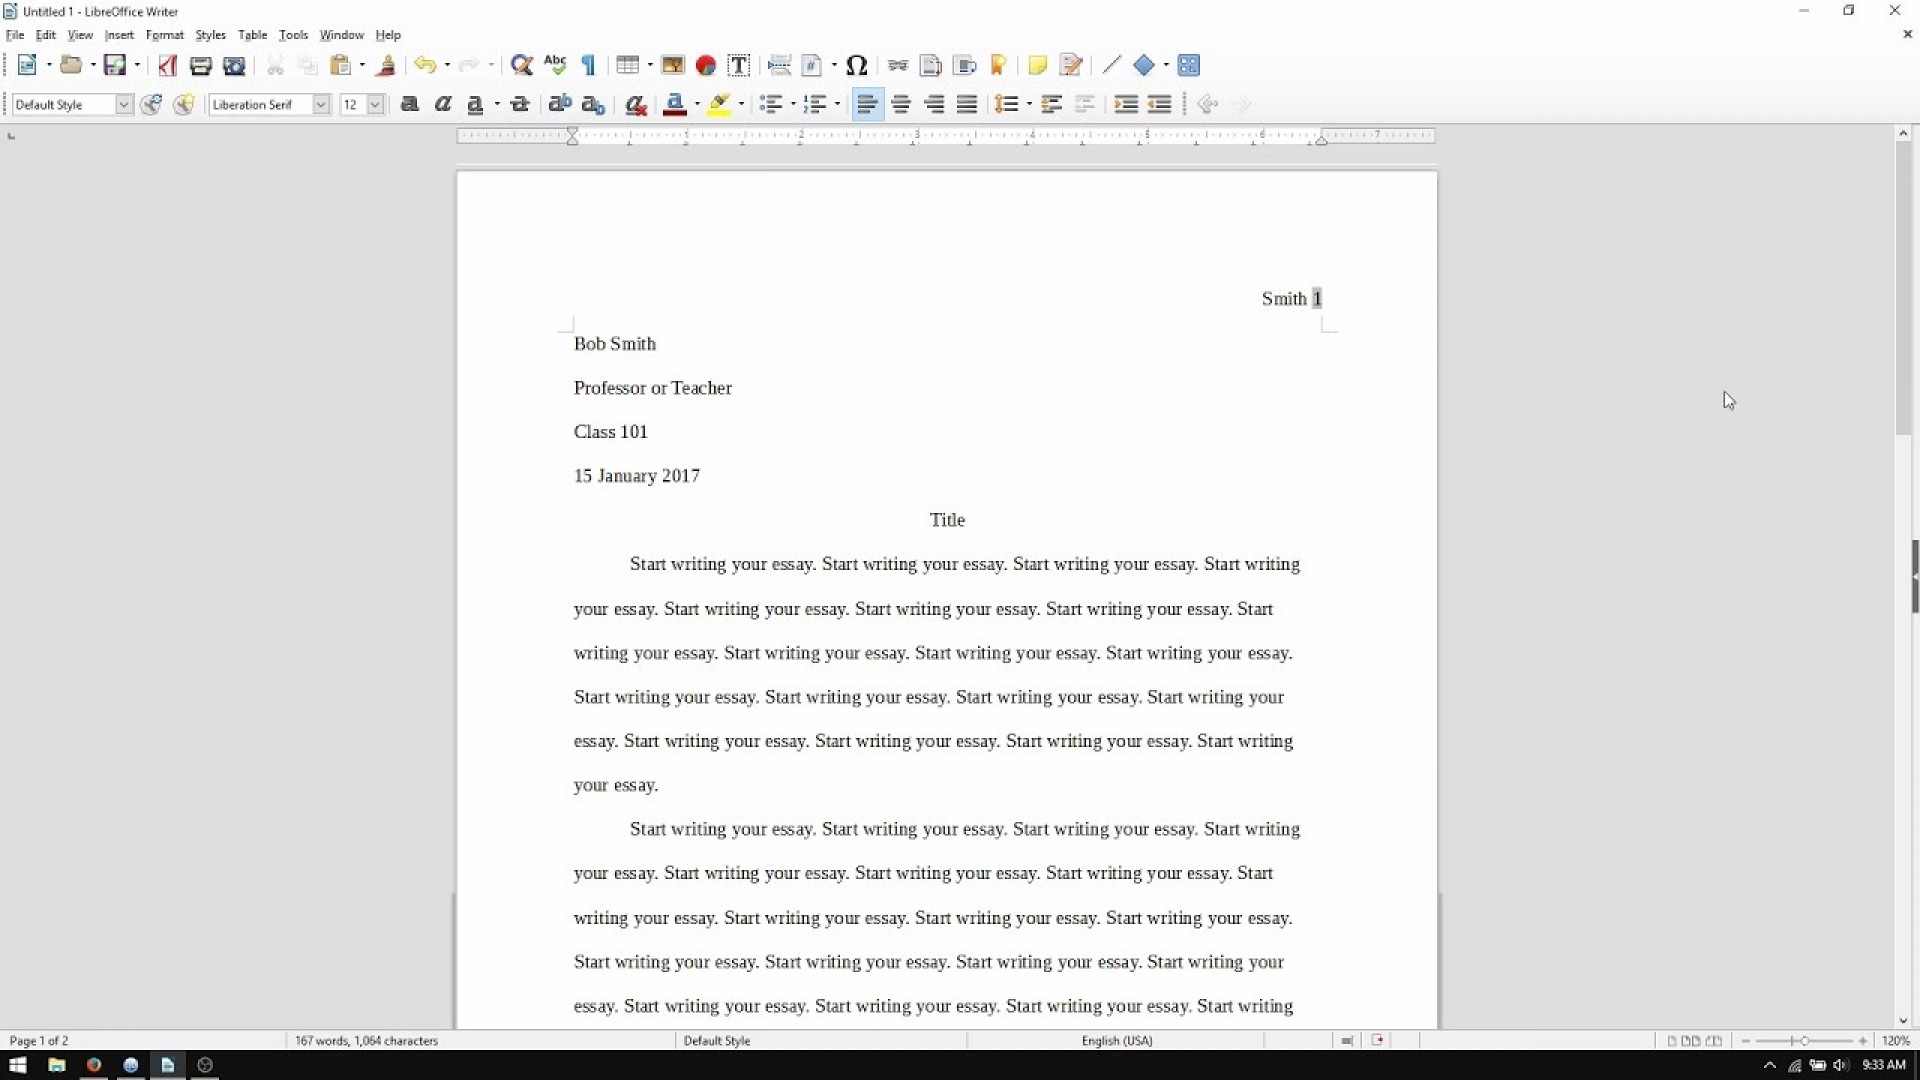 007 Essay Setup Example Stirring Persuasive Format Mla College Layout Sample Narrative Instructions 1920